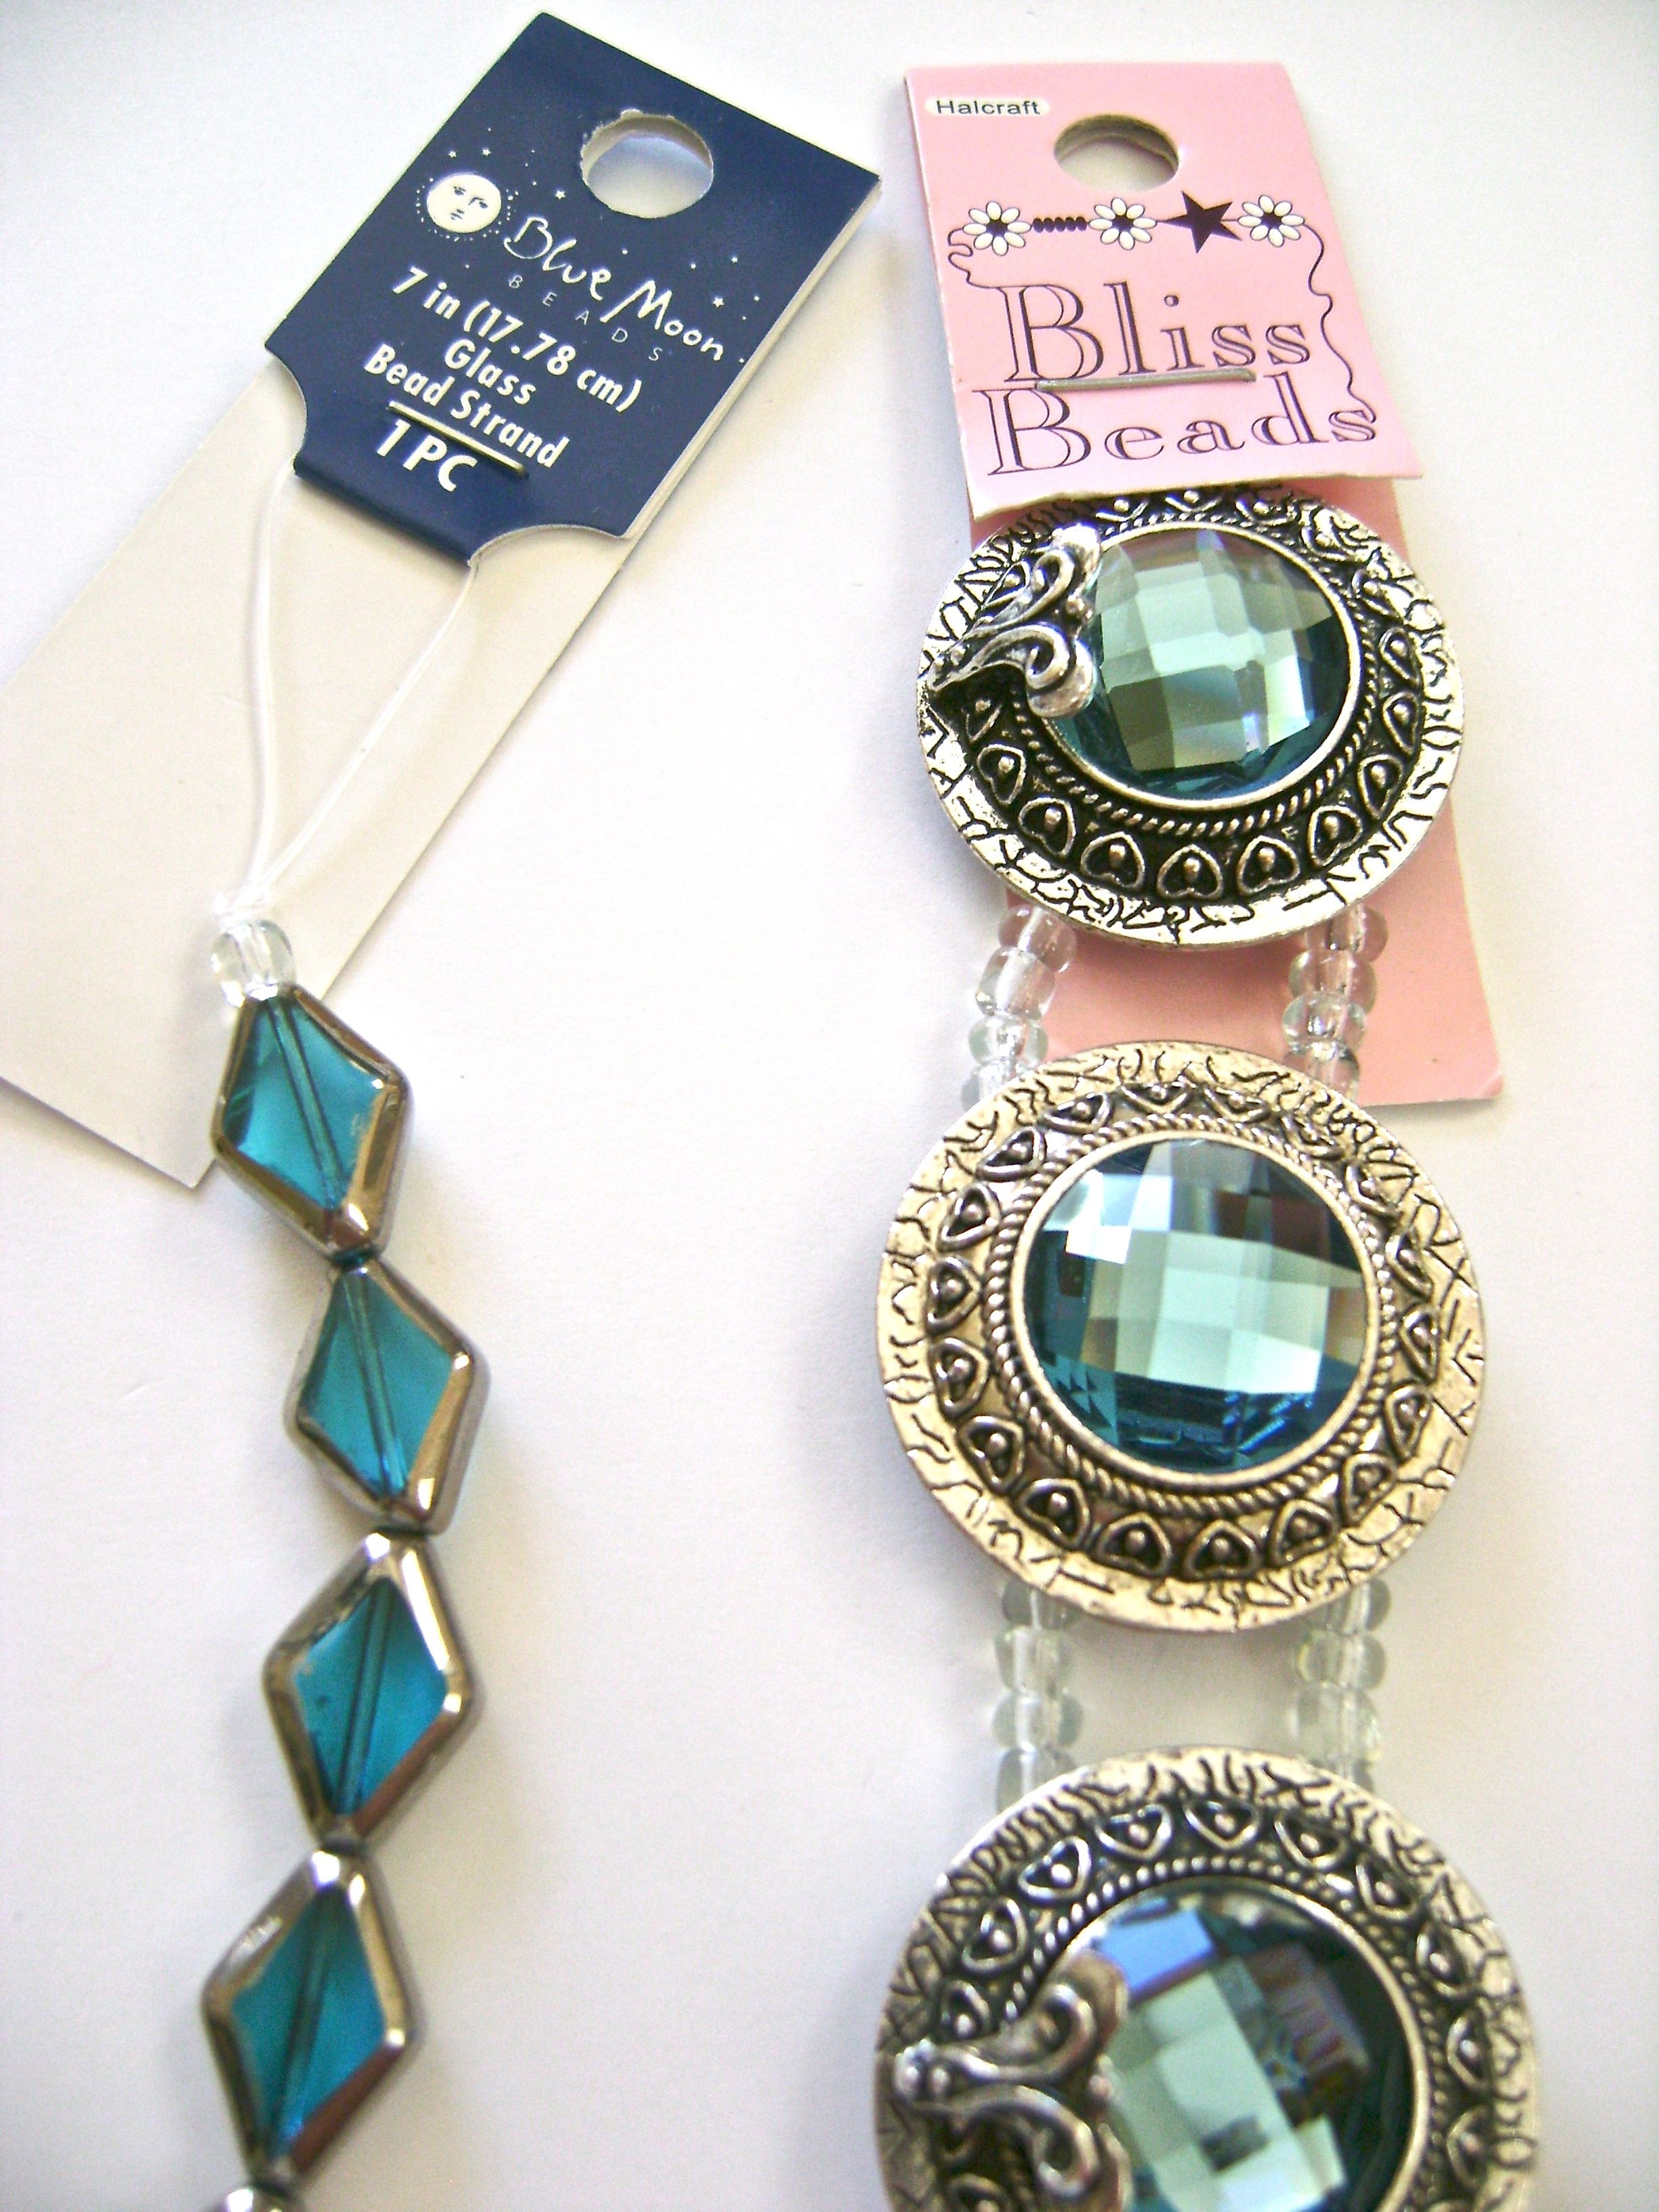 """Blue Moon and Bliss Beads - The Focal Bliss Bead measures approximately 1.25"""". Diamond shape beads measure .50""""."""